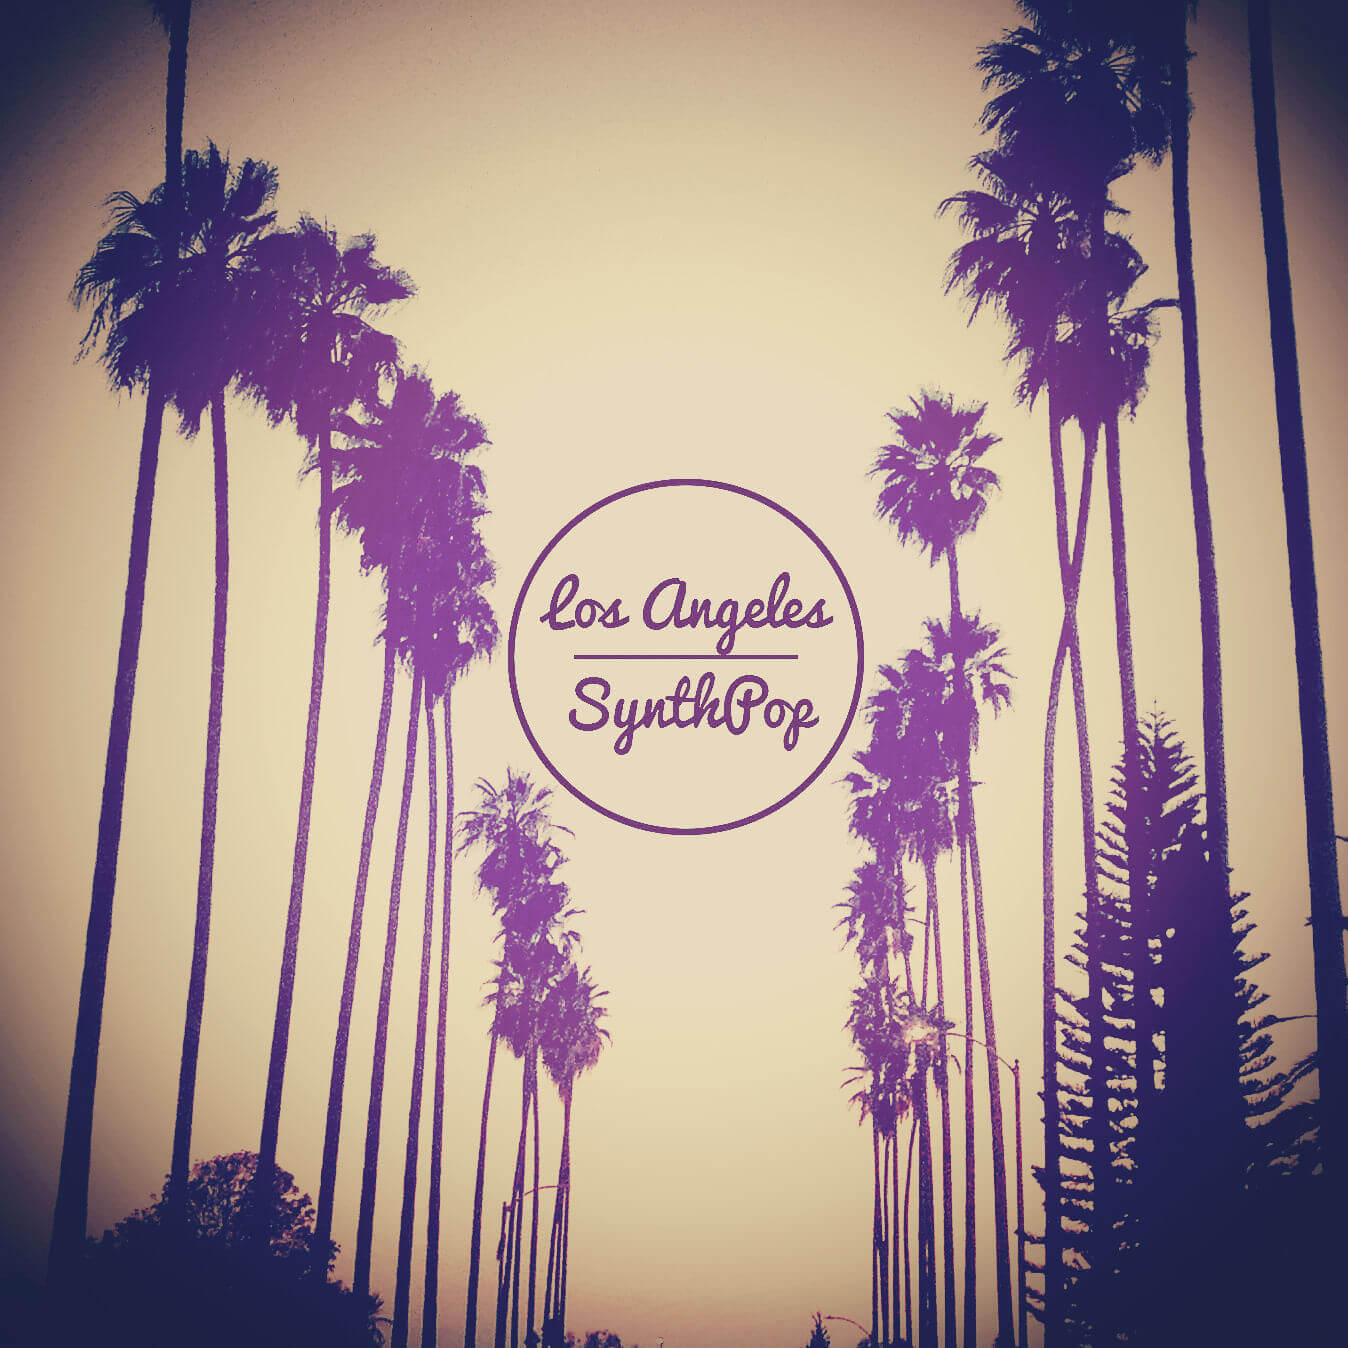 Los Angeles SynthPop